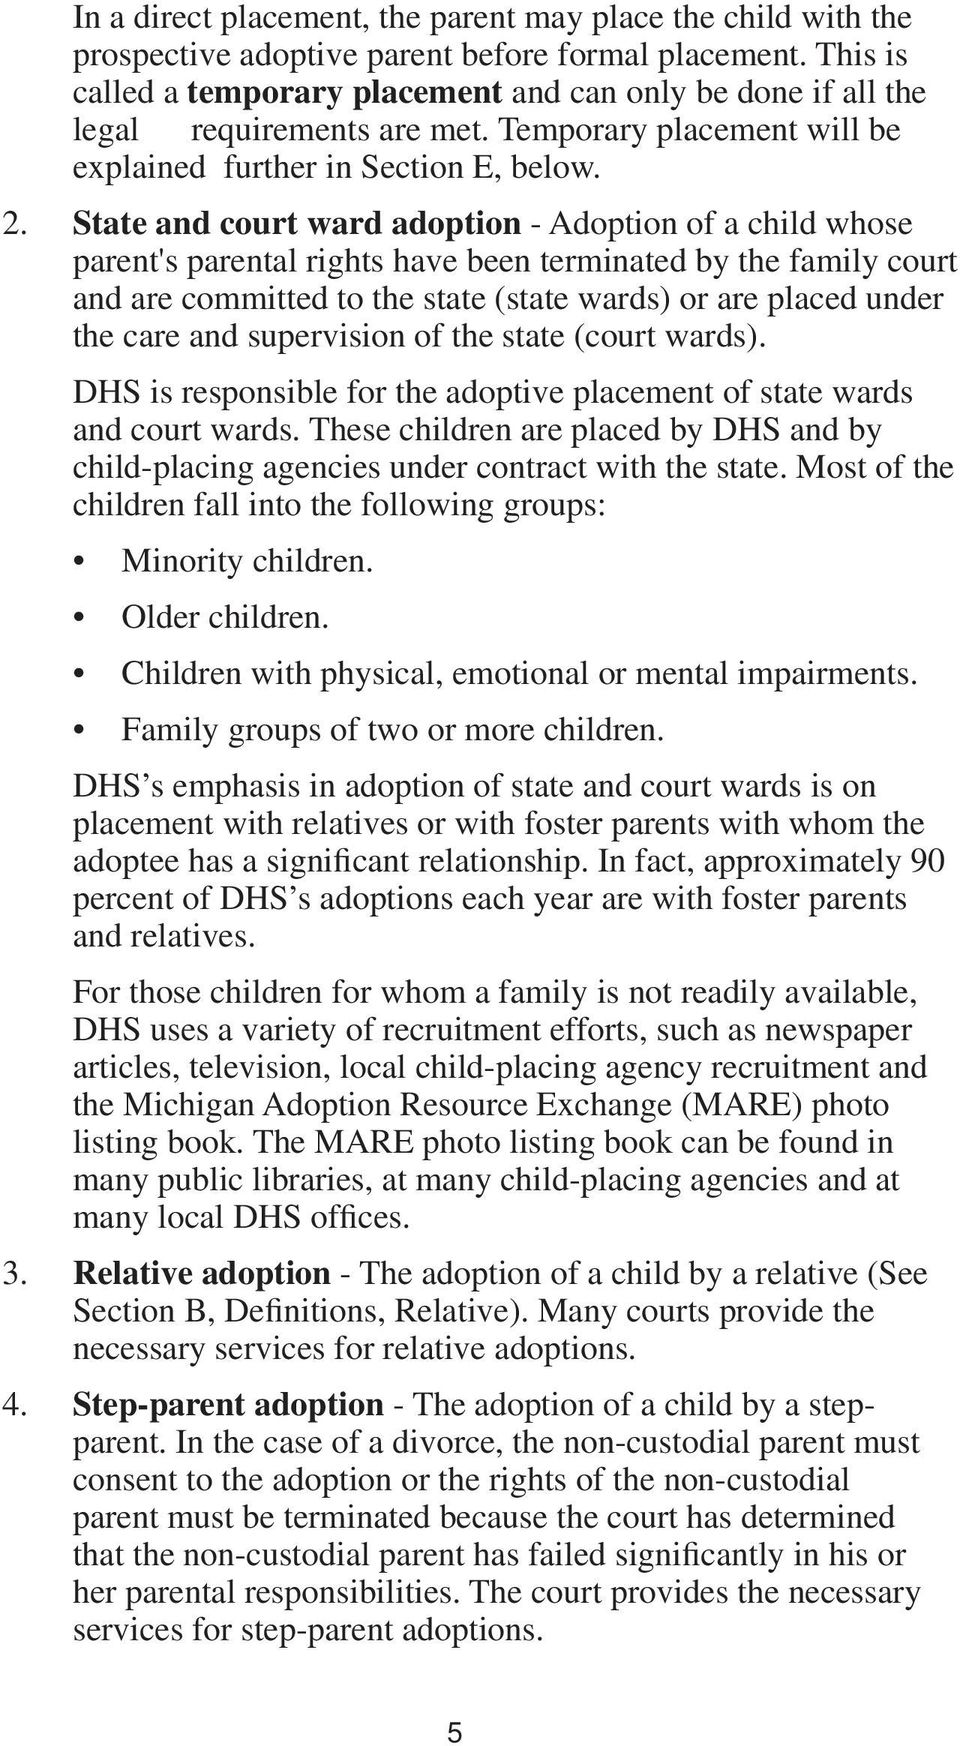 State and court ward adoption - Adoption of a child whose parent's parental rights have been terminated by the family court and are committed to the state (state wards) or are placed under the care